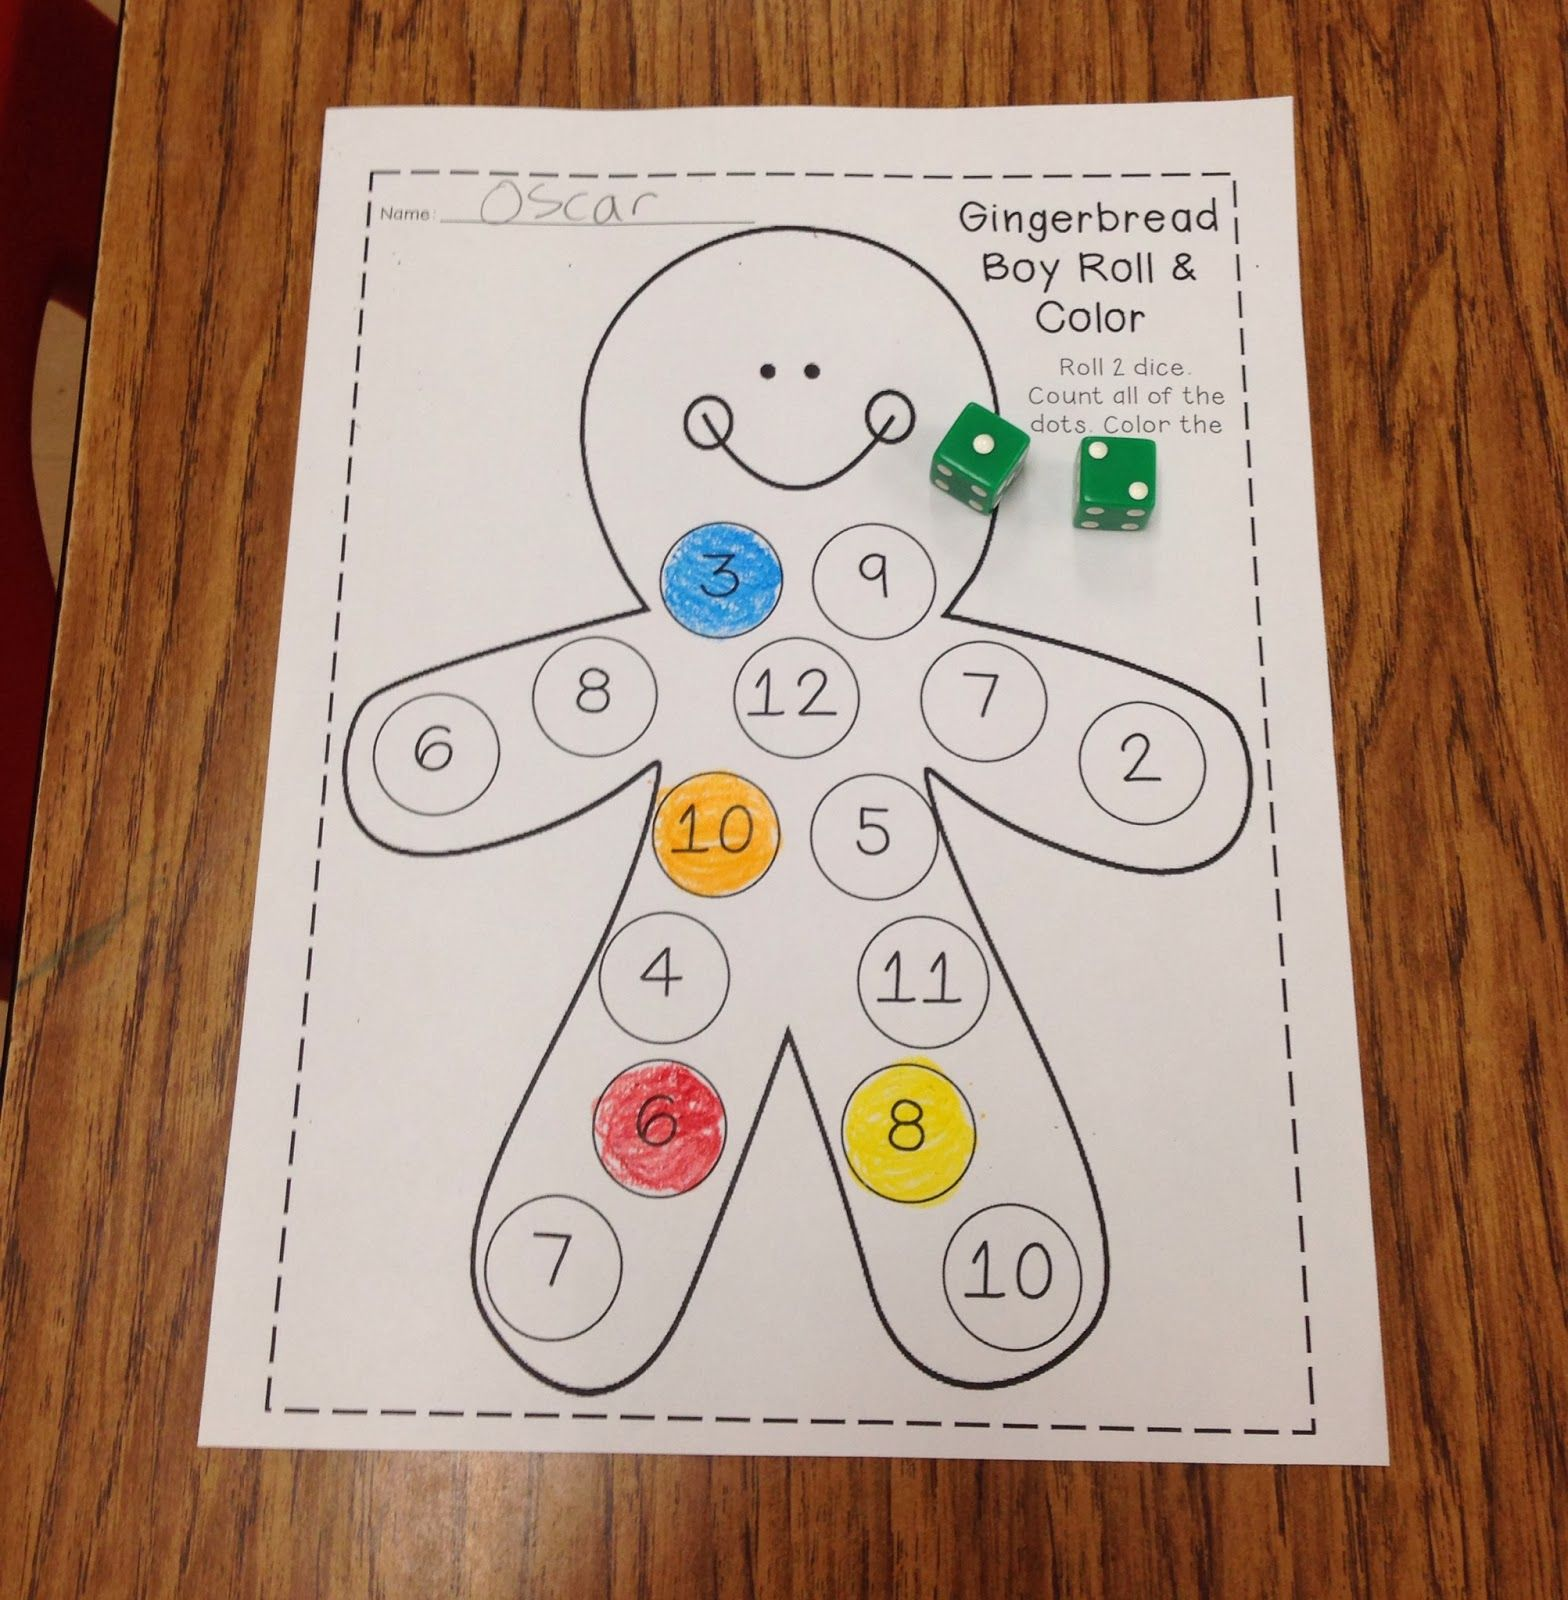 The Gingerbread Man and Girl Unit TONS of math literacy and